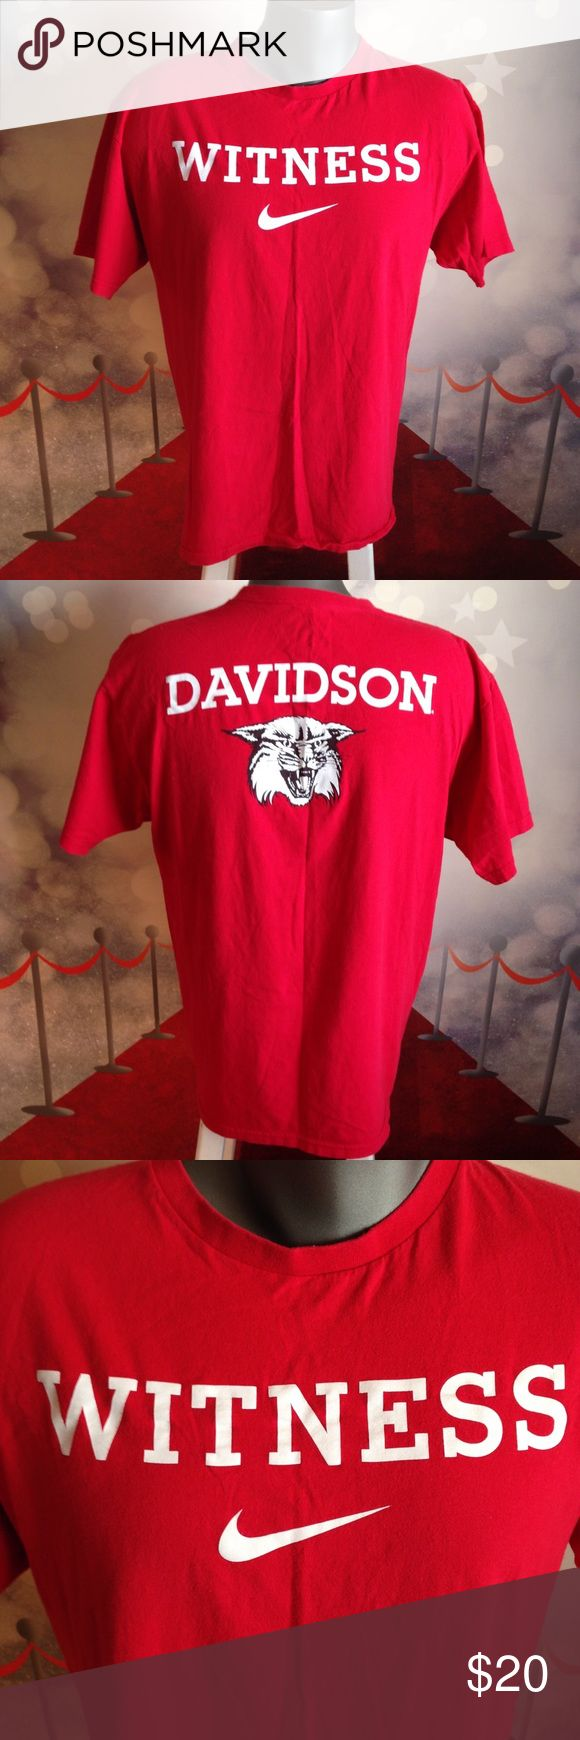 """Nike Lebron James """"Witness"""" Davidson College Nike Lebron James """"Witness"""" T Shirt Red Men's Large Davidson College  """"Witness"""" on front and Davidson college logo on back   Men's Performance T-Shirt  The Nike LeBron Witness Logo solid way to honor a high-flying hoops ruler. A standard fit and rib crew neck make this men's tee shirt comfortable and ready for your next hoops game.   Size: Men's Large  Color: Red   T-Shirt Features  FABRIC: 100% Cotton   Screenprinted graphic center chest and full…"""